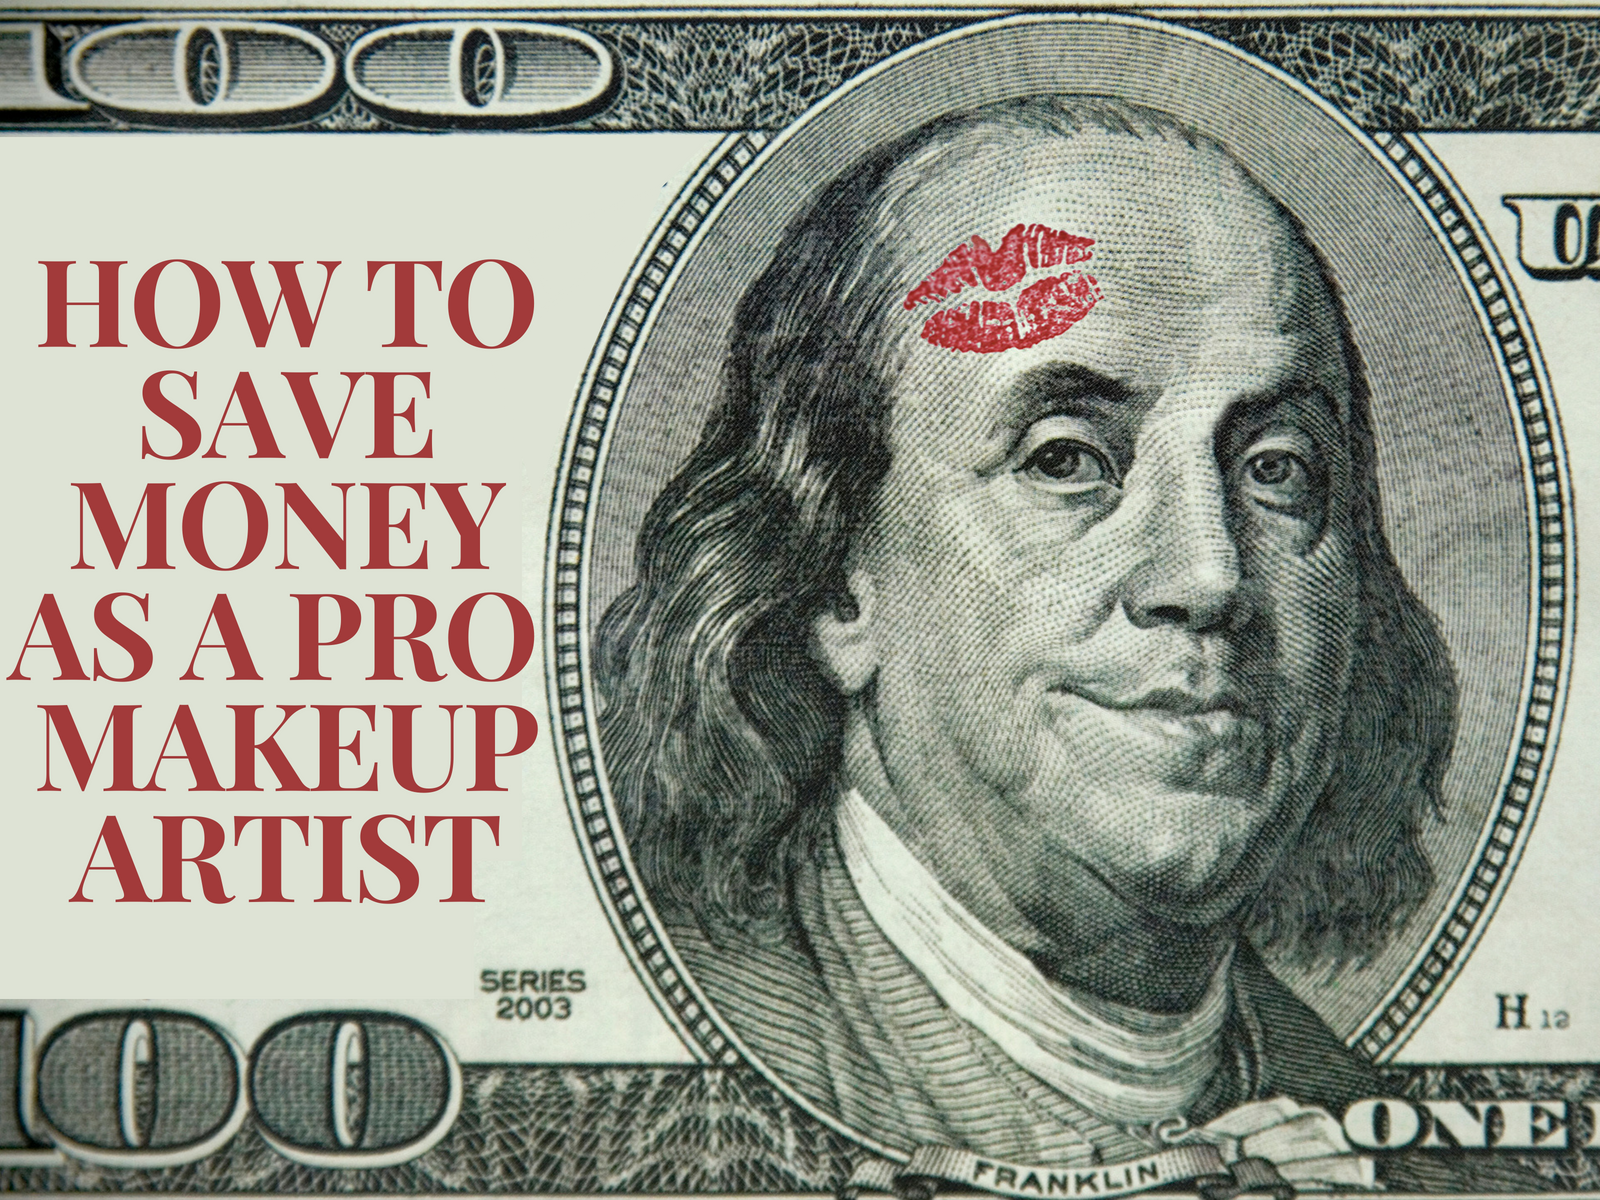 50 PRO MAKEUP ARTIST DISCOUNT PROGRAMS | Los Angeles | Candace Miller Makeup | MUA